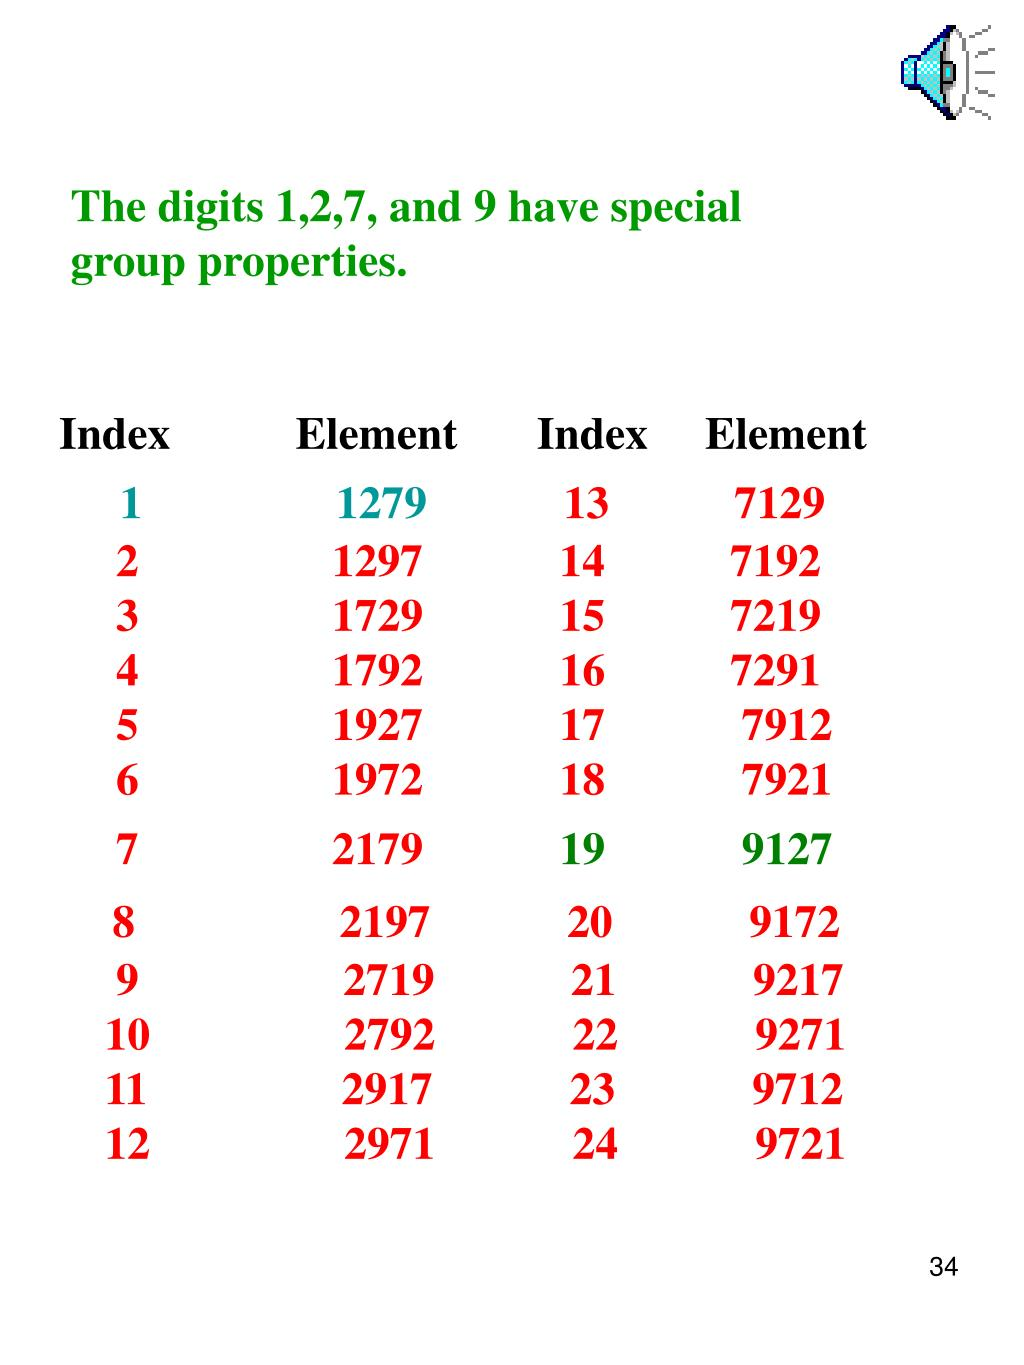 The digits 1,2,7, and 9 have special